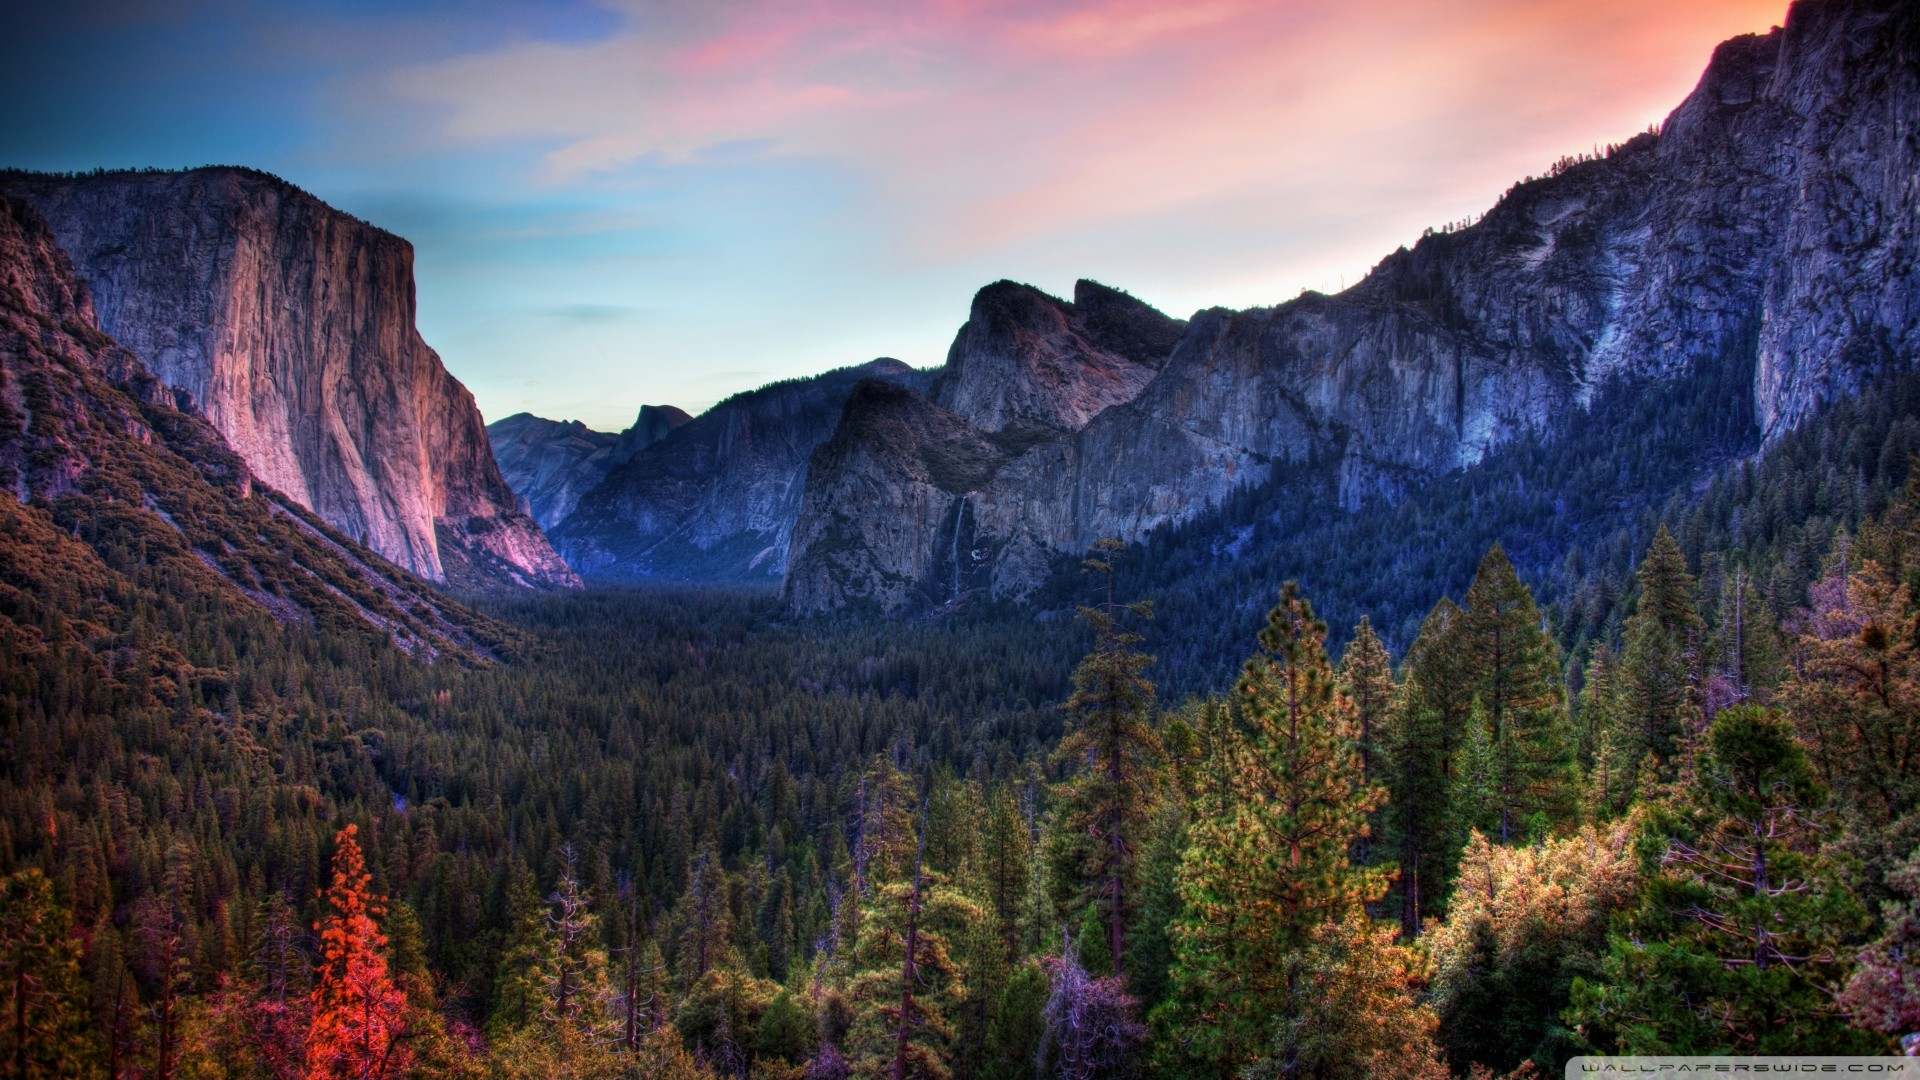 1920x1080 0  Yosemite Wallpaper Images Wmwallpapers  Yosemite  Wallpaper Mac